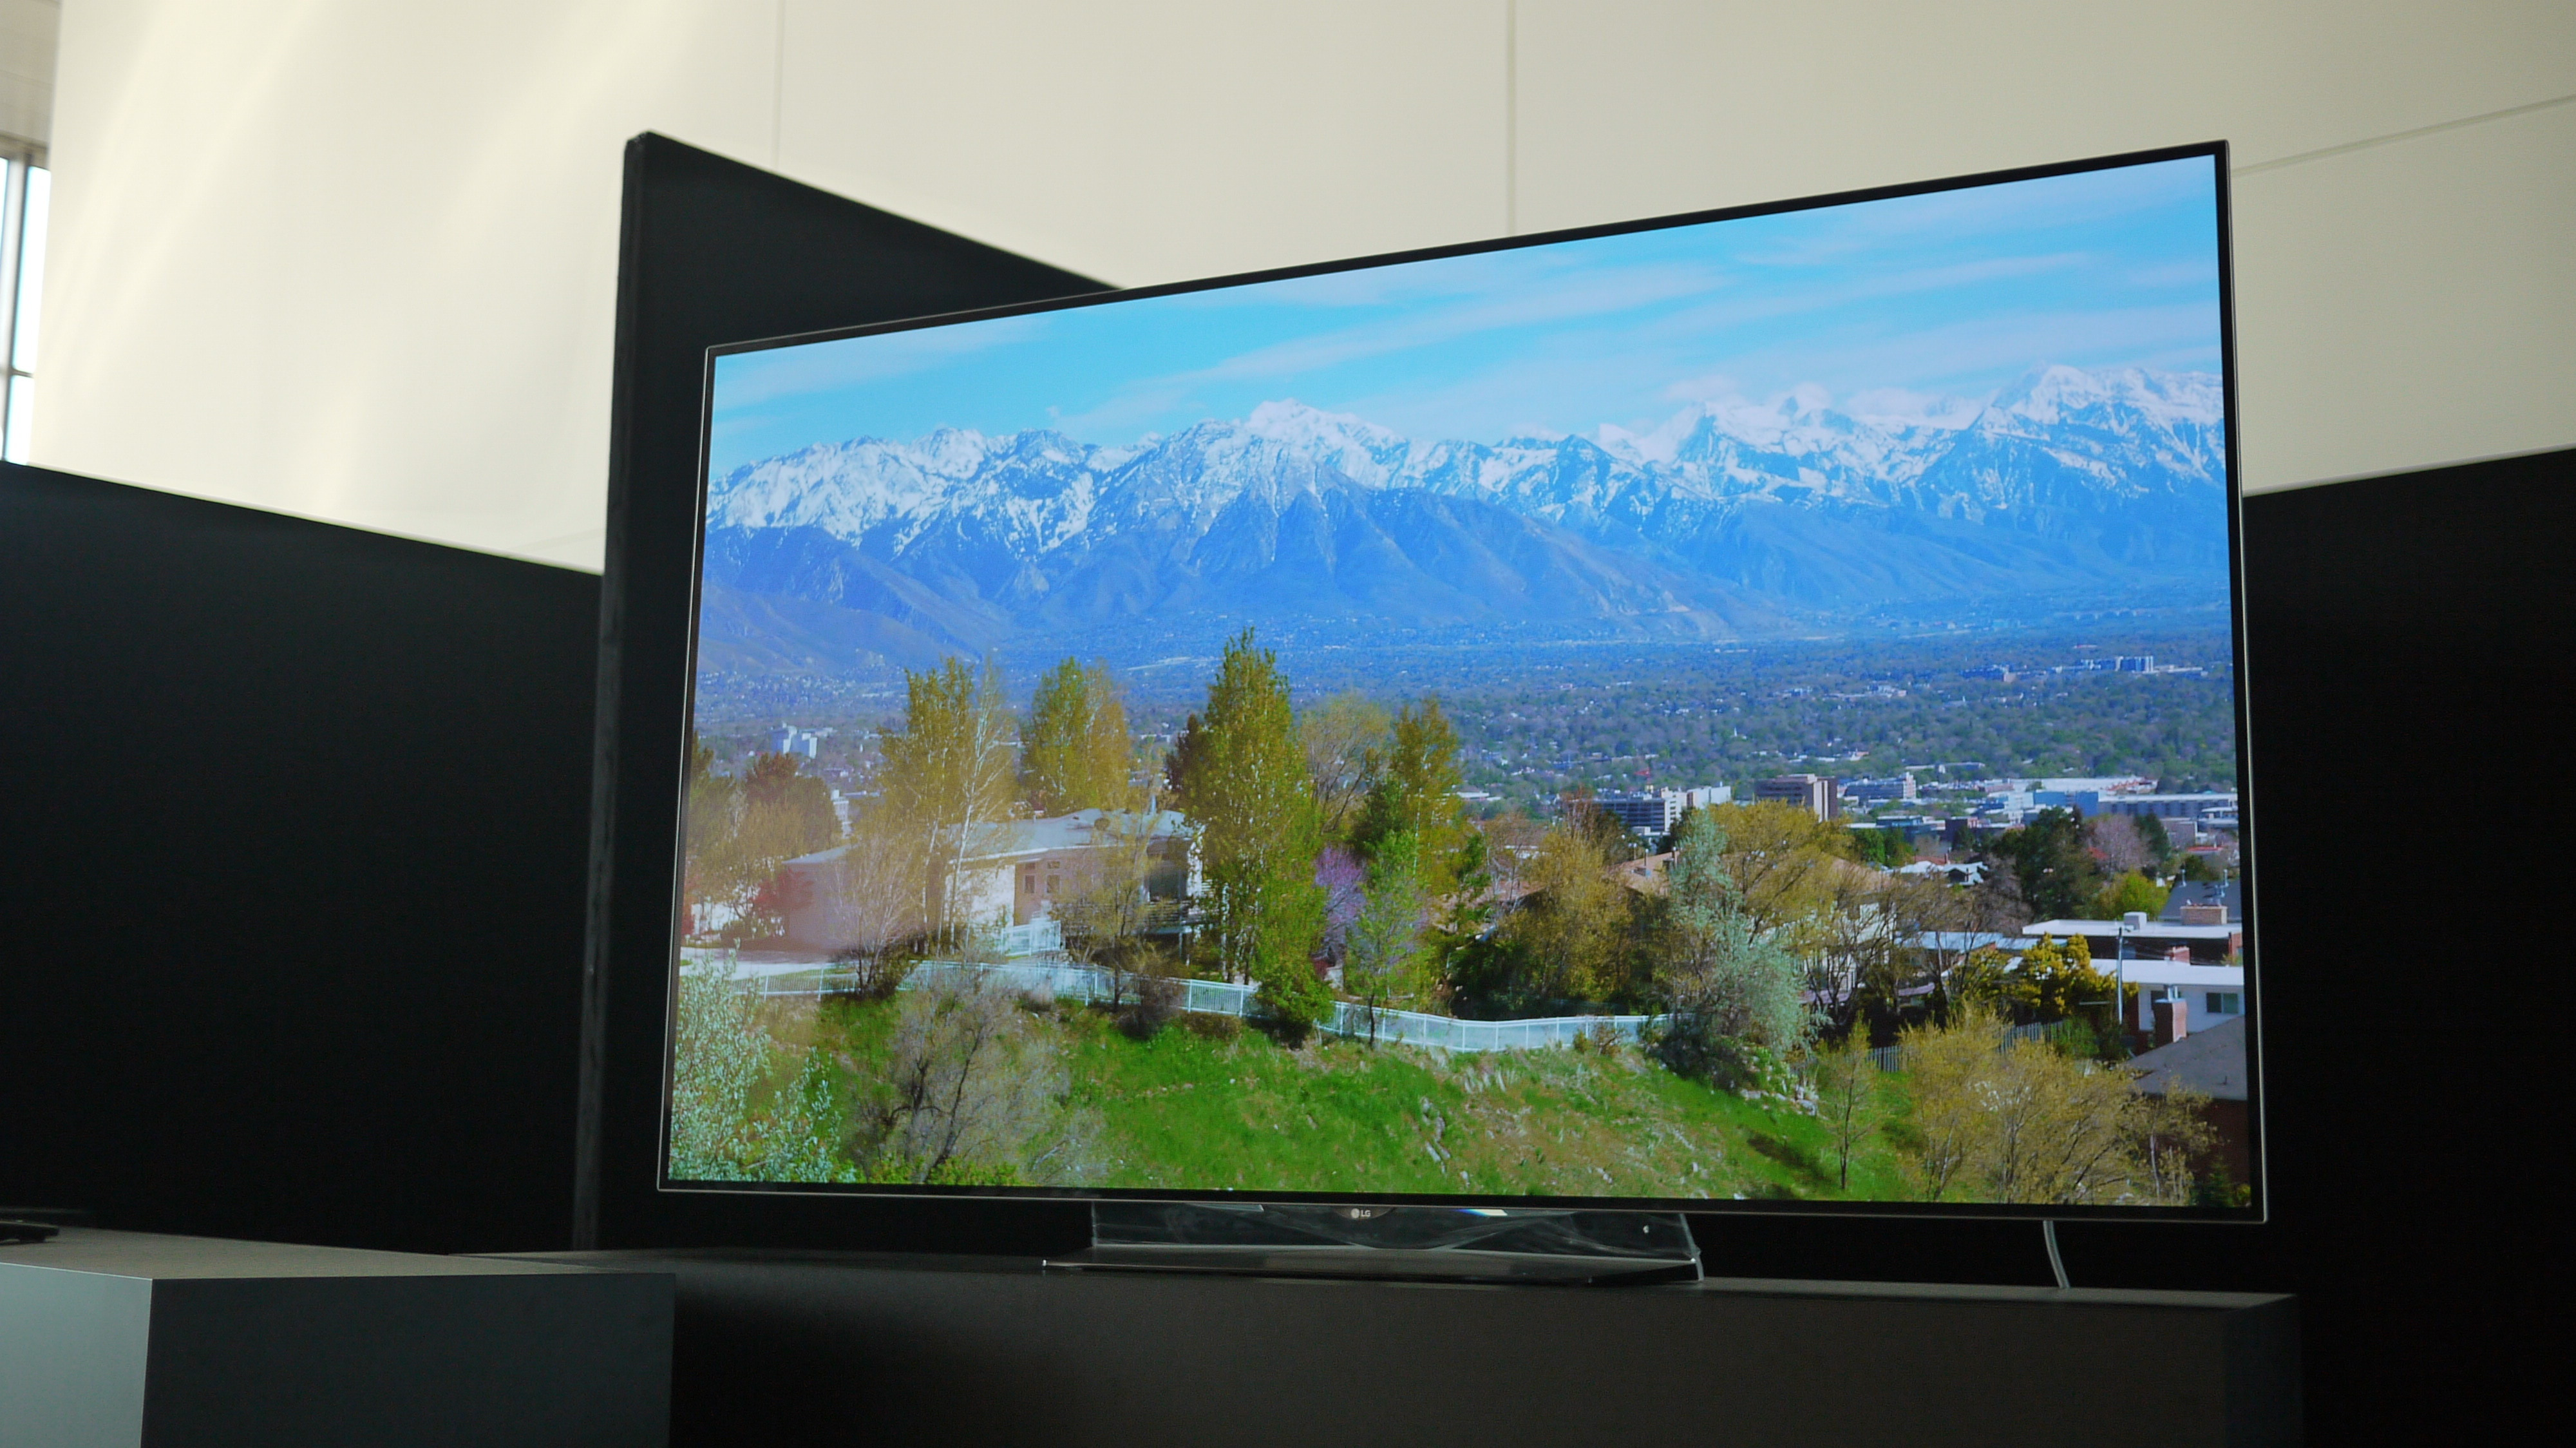 LG and SES to Demonstrate 4K High Frame Rate Technology at SES Industry Days